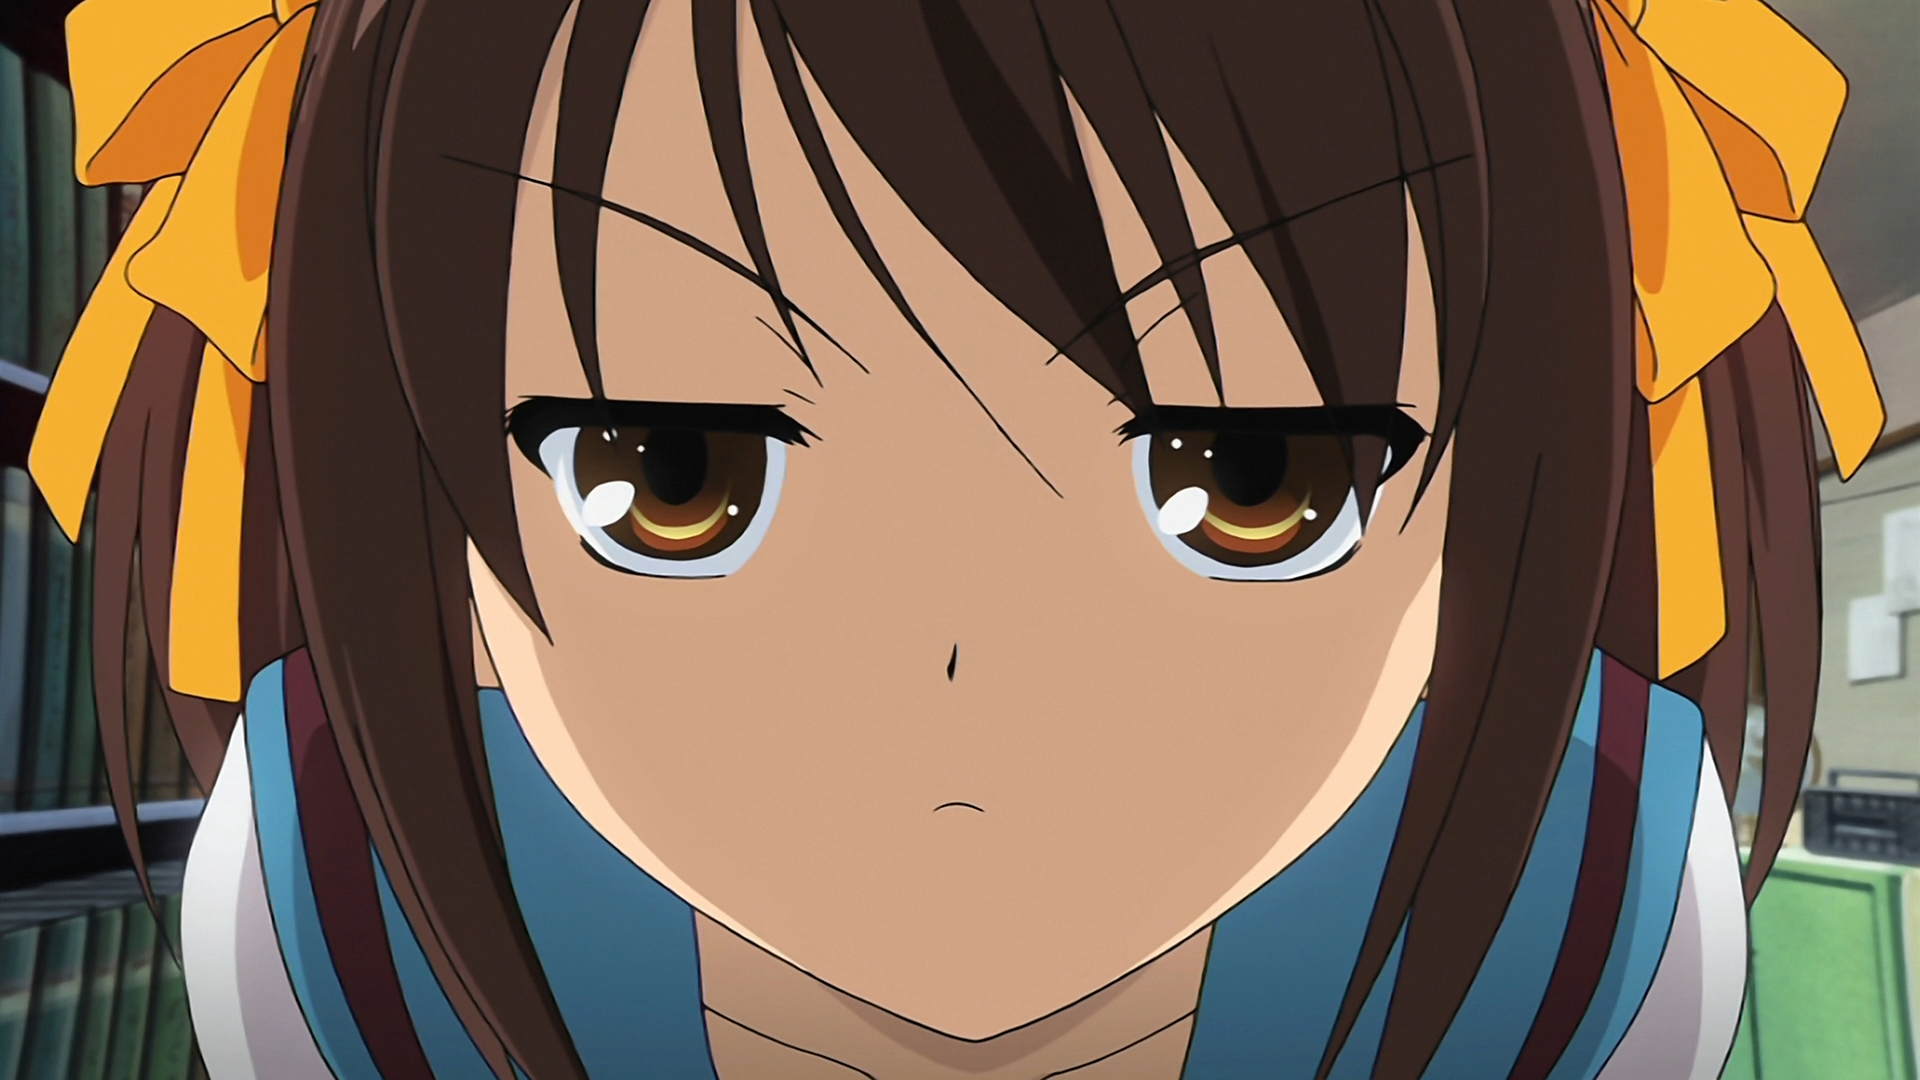 282441 Sword Art Online Funimation Gif in addition 103937 Sword Art Online Black And White Gif as well 460389 Zero No Tsukaima First Kiss Gif further Sword Art Online Asuna Yuuki Alfheim 354658324 furthermore 553708 Black And White Anime Black And White Gif. on kirito thumbs up